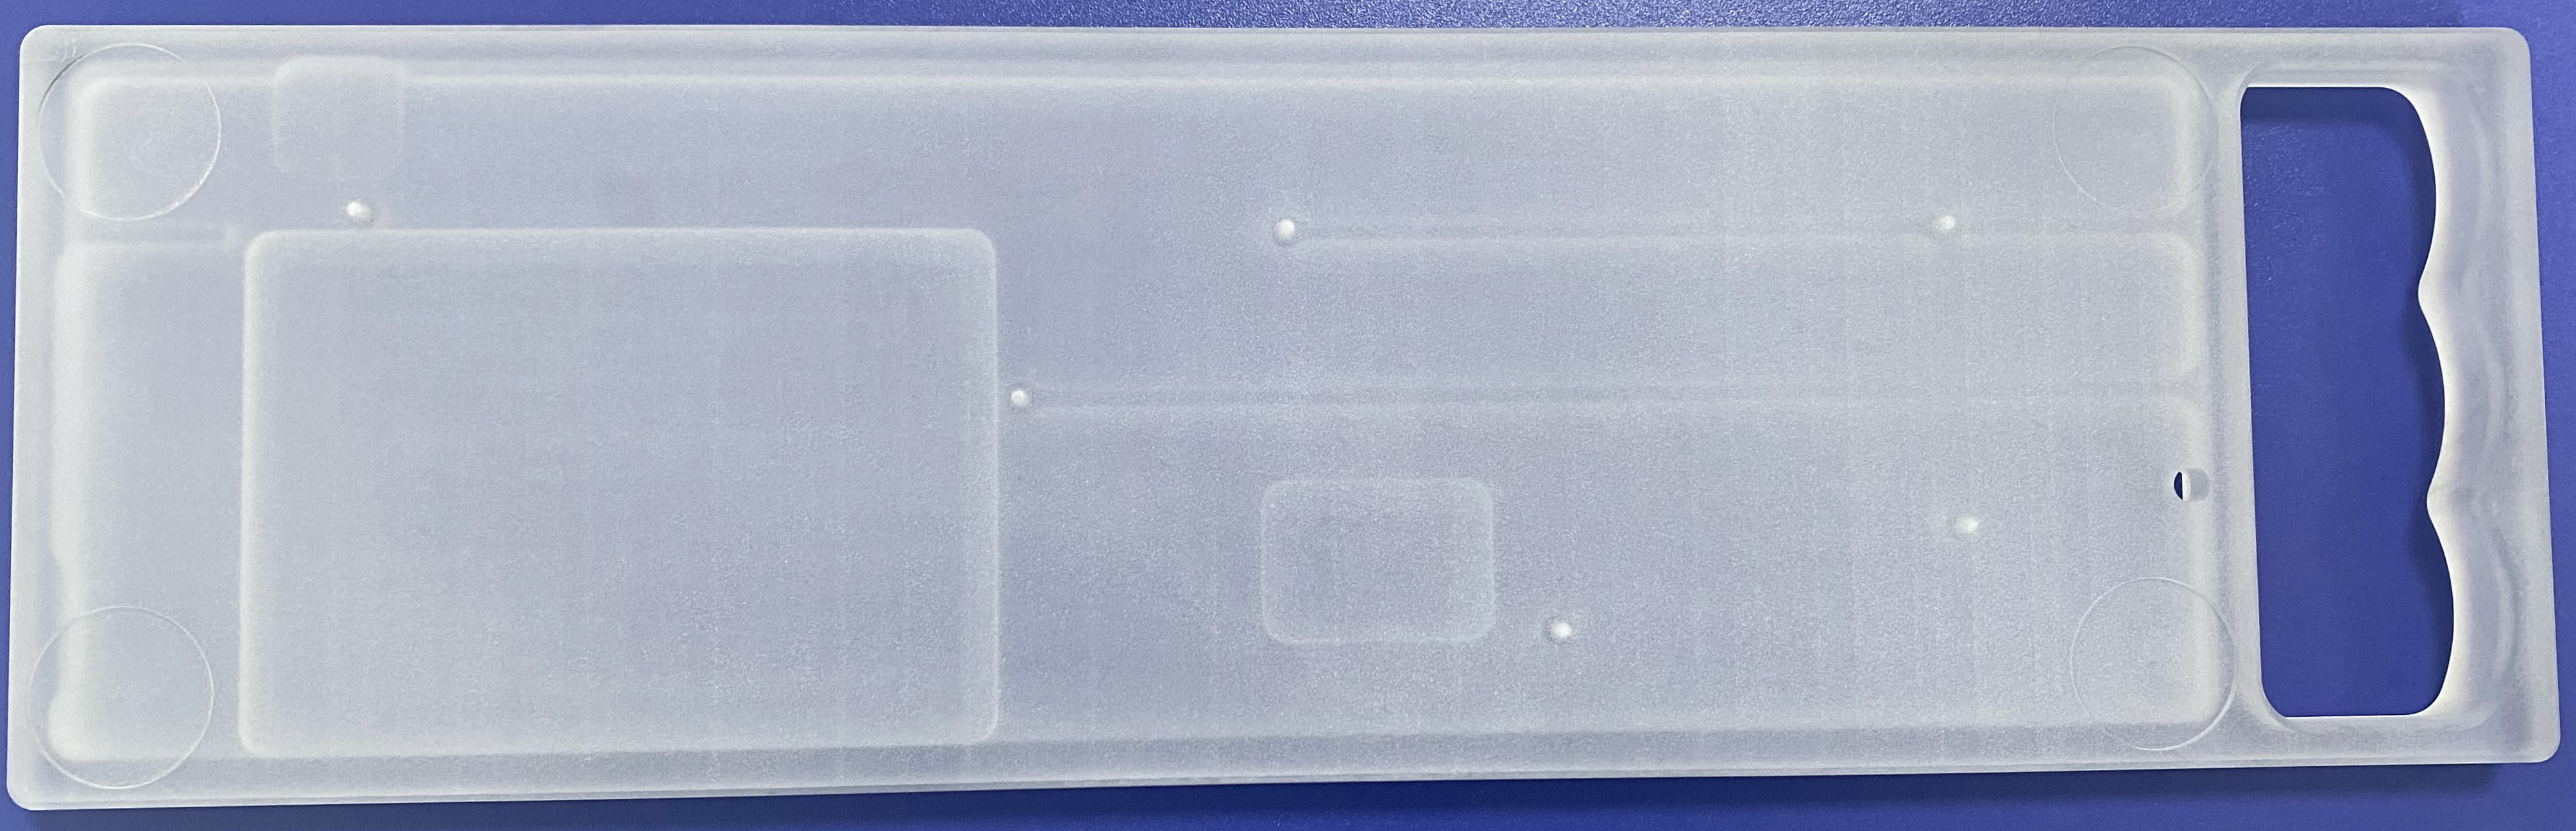 Bottom view of a polycarbonate Rackmount